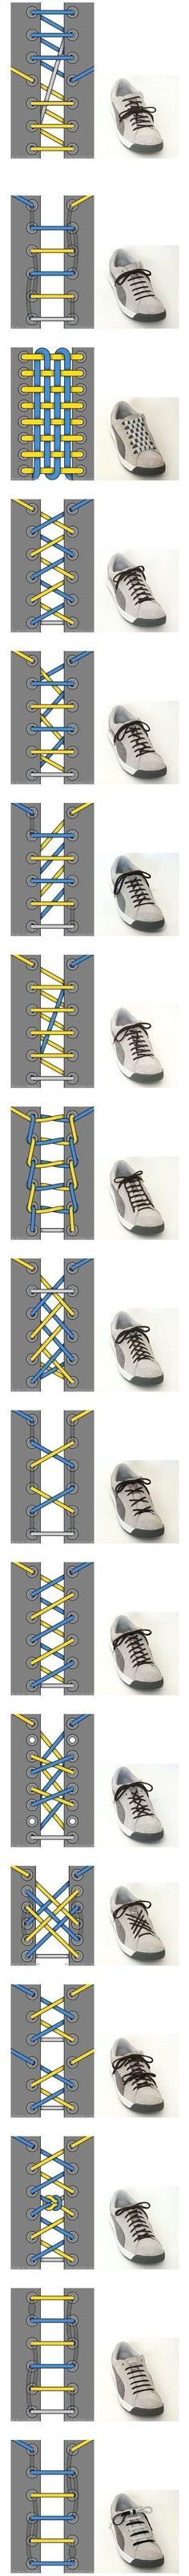 Who'd have imagined that there would be so many ways to tie your shoe (or other things that need lacing)?